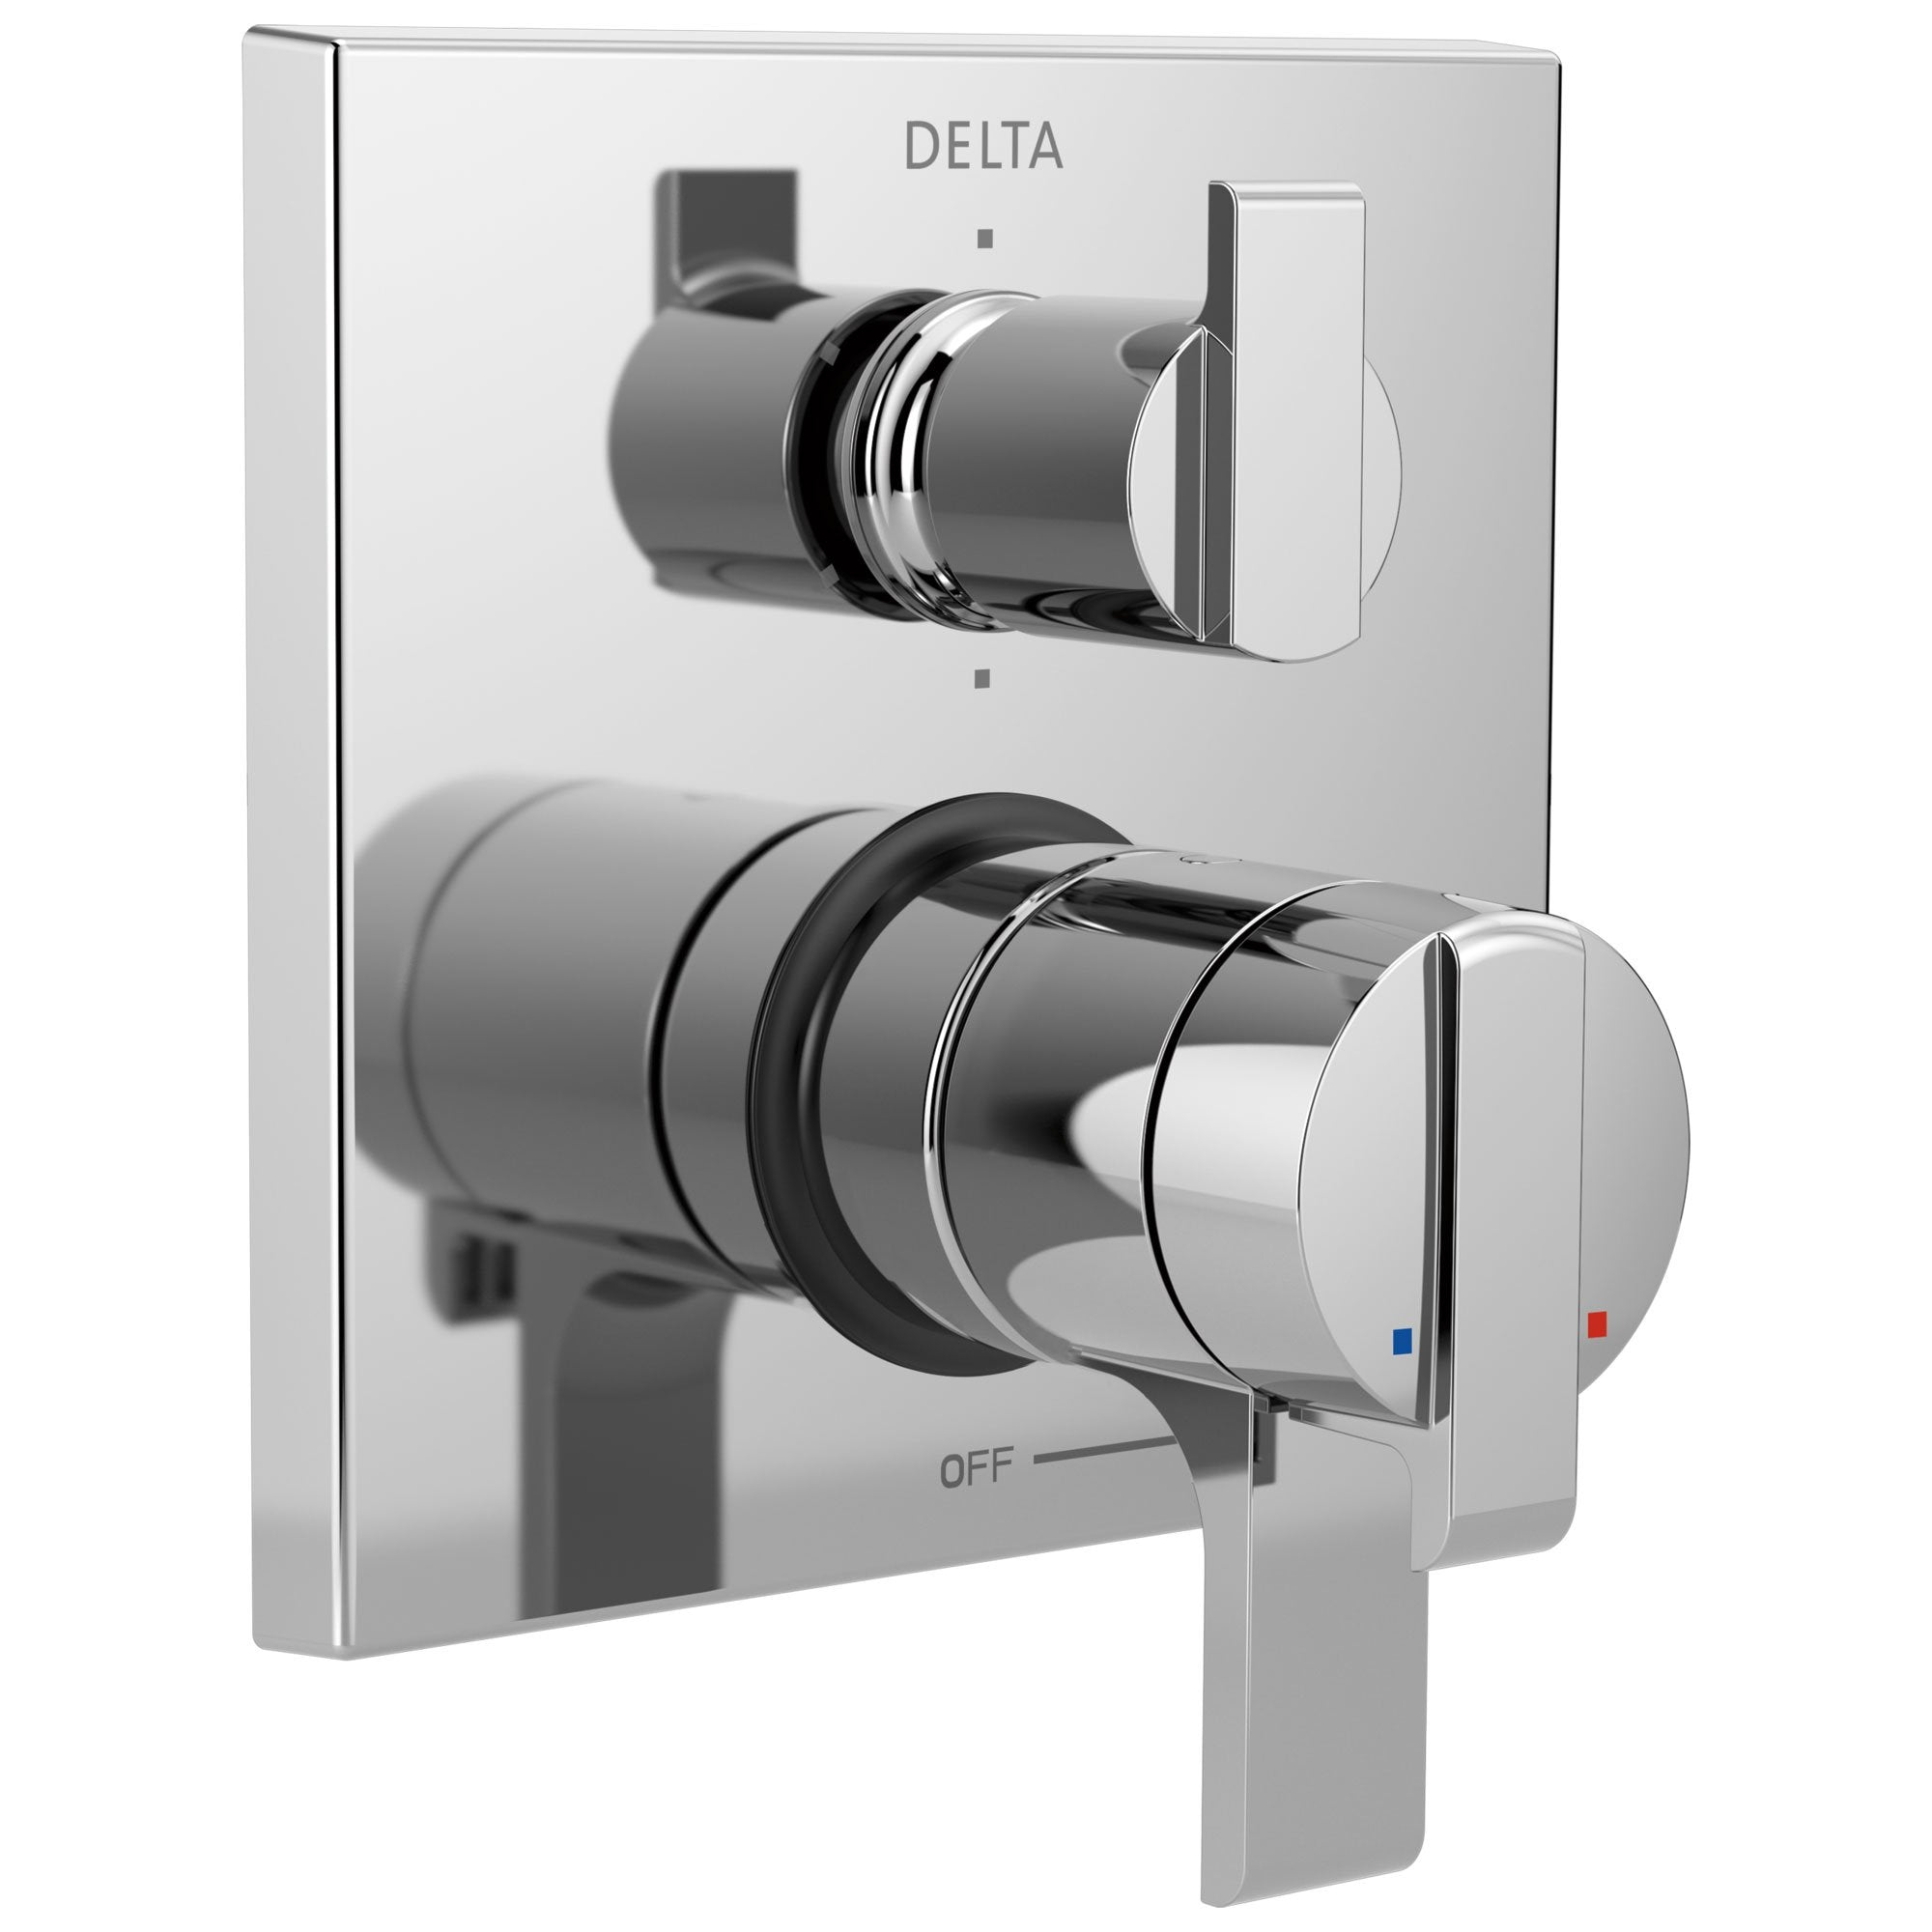 Delta Ara Chrome Angular Modern Monitor 17 Shower Faucet Control Handle with 6-Setting Integrated Diverter Includes Trim Kit and Valve without Stops D2152V